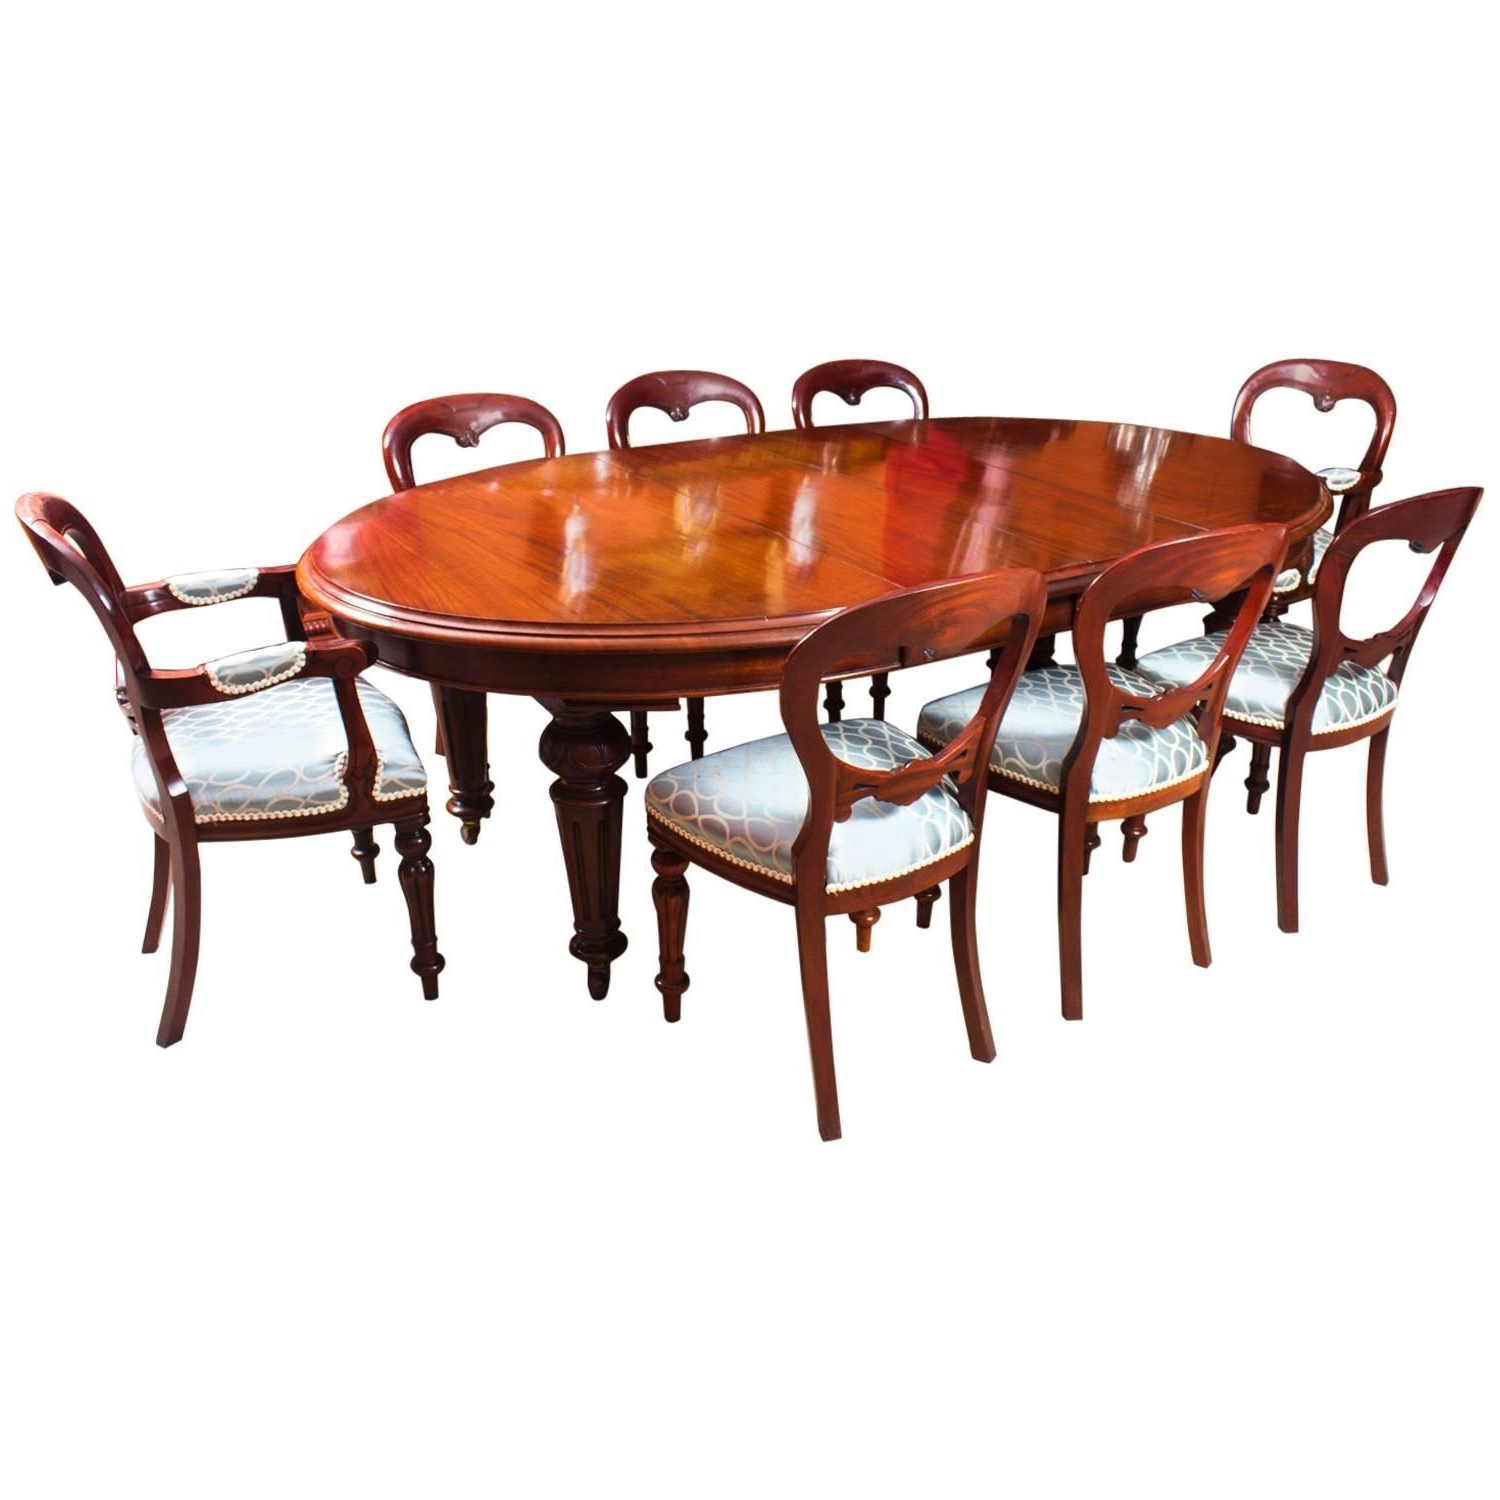 Newest Antique Victorian Oval Dining Table 8 Chairs Antique Wooden Dining Within Oval Dining Tables For Sale (View 6 of 25)